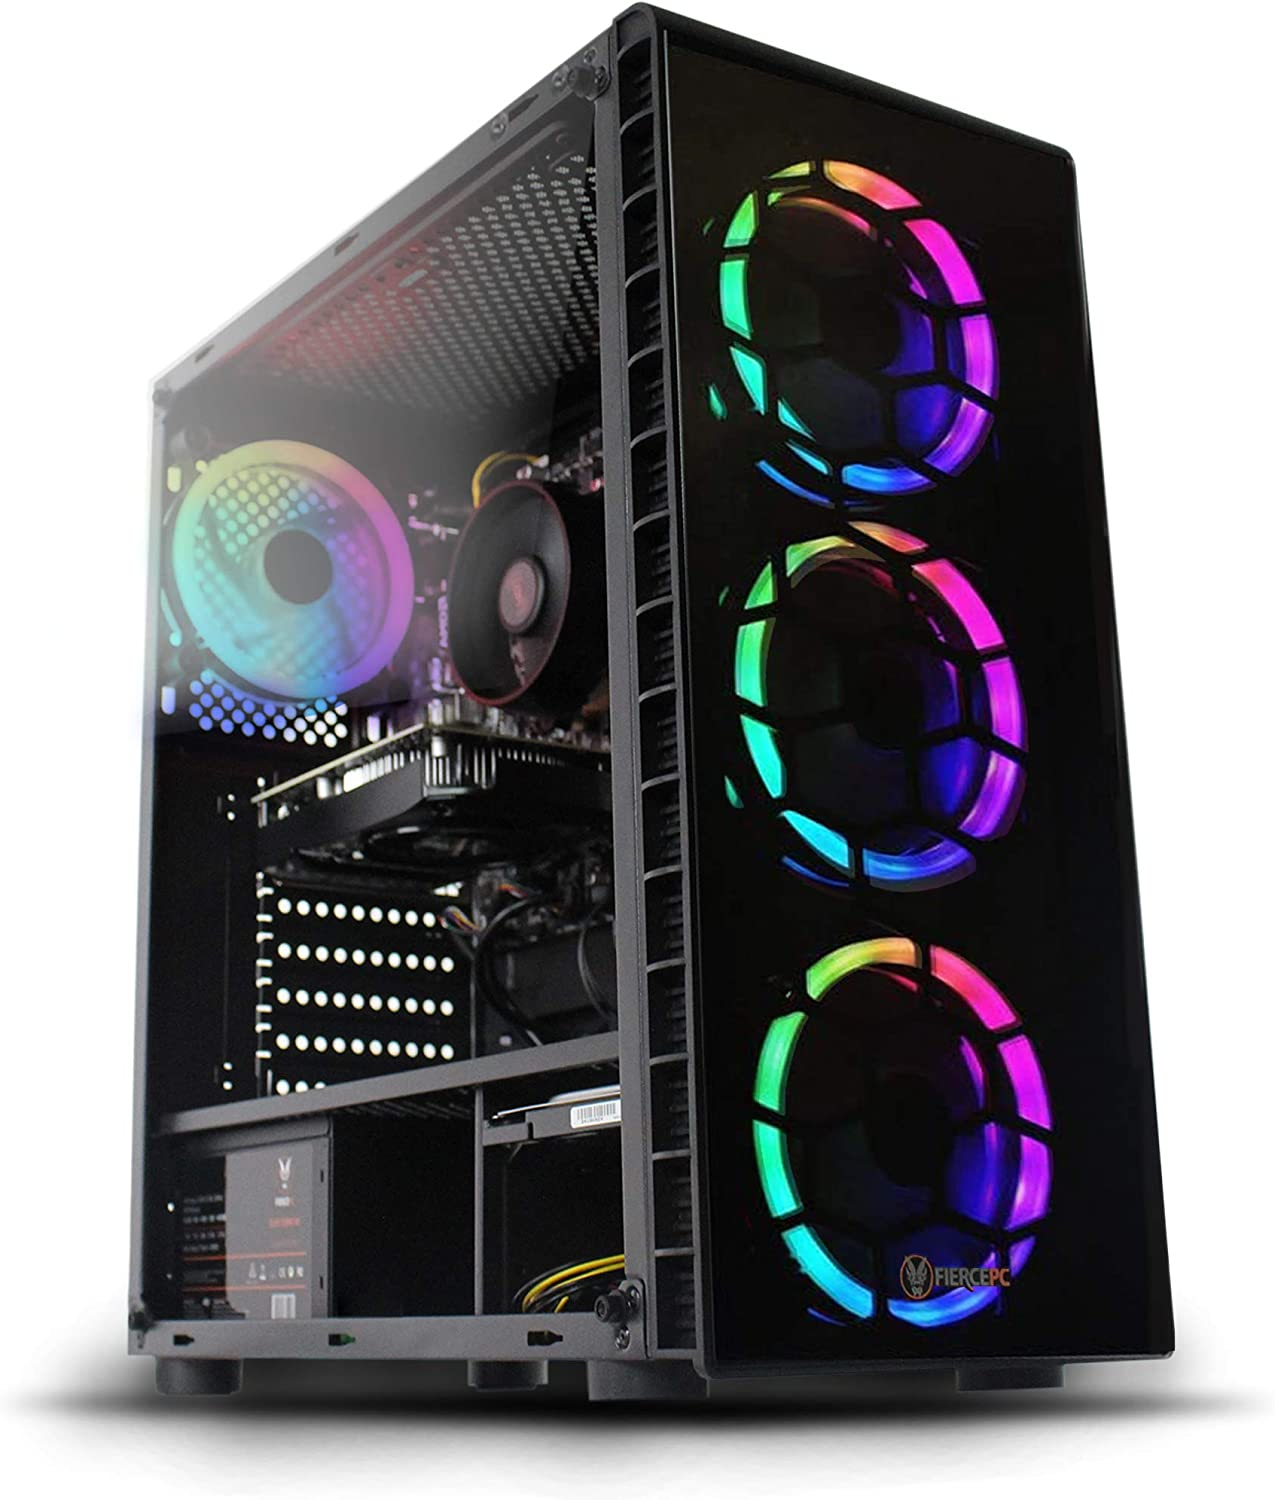 Fierce Crusader RGB PC Gamer - Rápido 4.1GHz Hex-Core Intel Core i5 9400F, 240GB SSD, 1TB Disco Duro, 16GB de 3000MHz, NVIDIA GeForce GTX 1660 Super 6GB, Windows 10 Instalado 1141828: Amazon.es: Informática